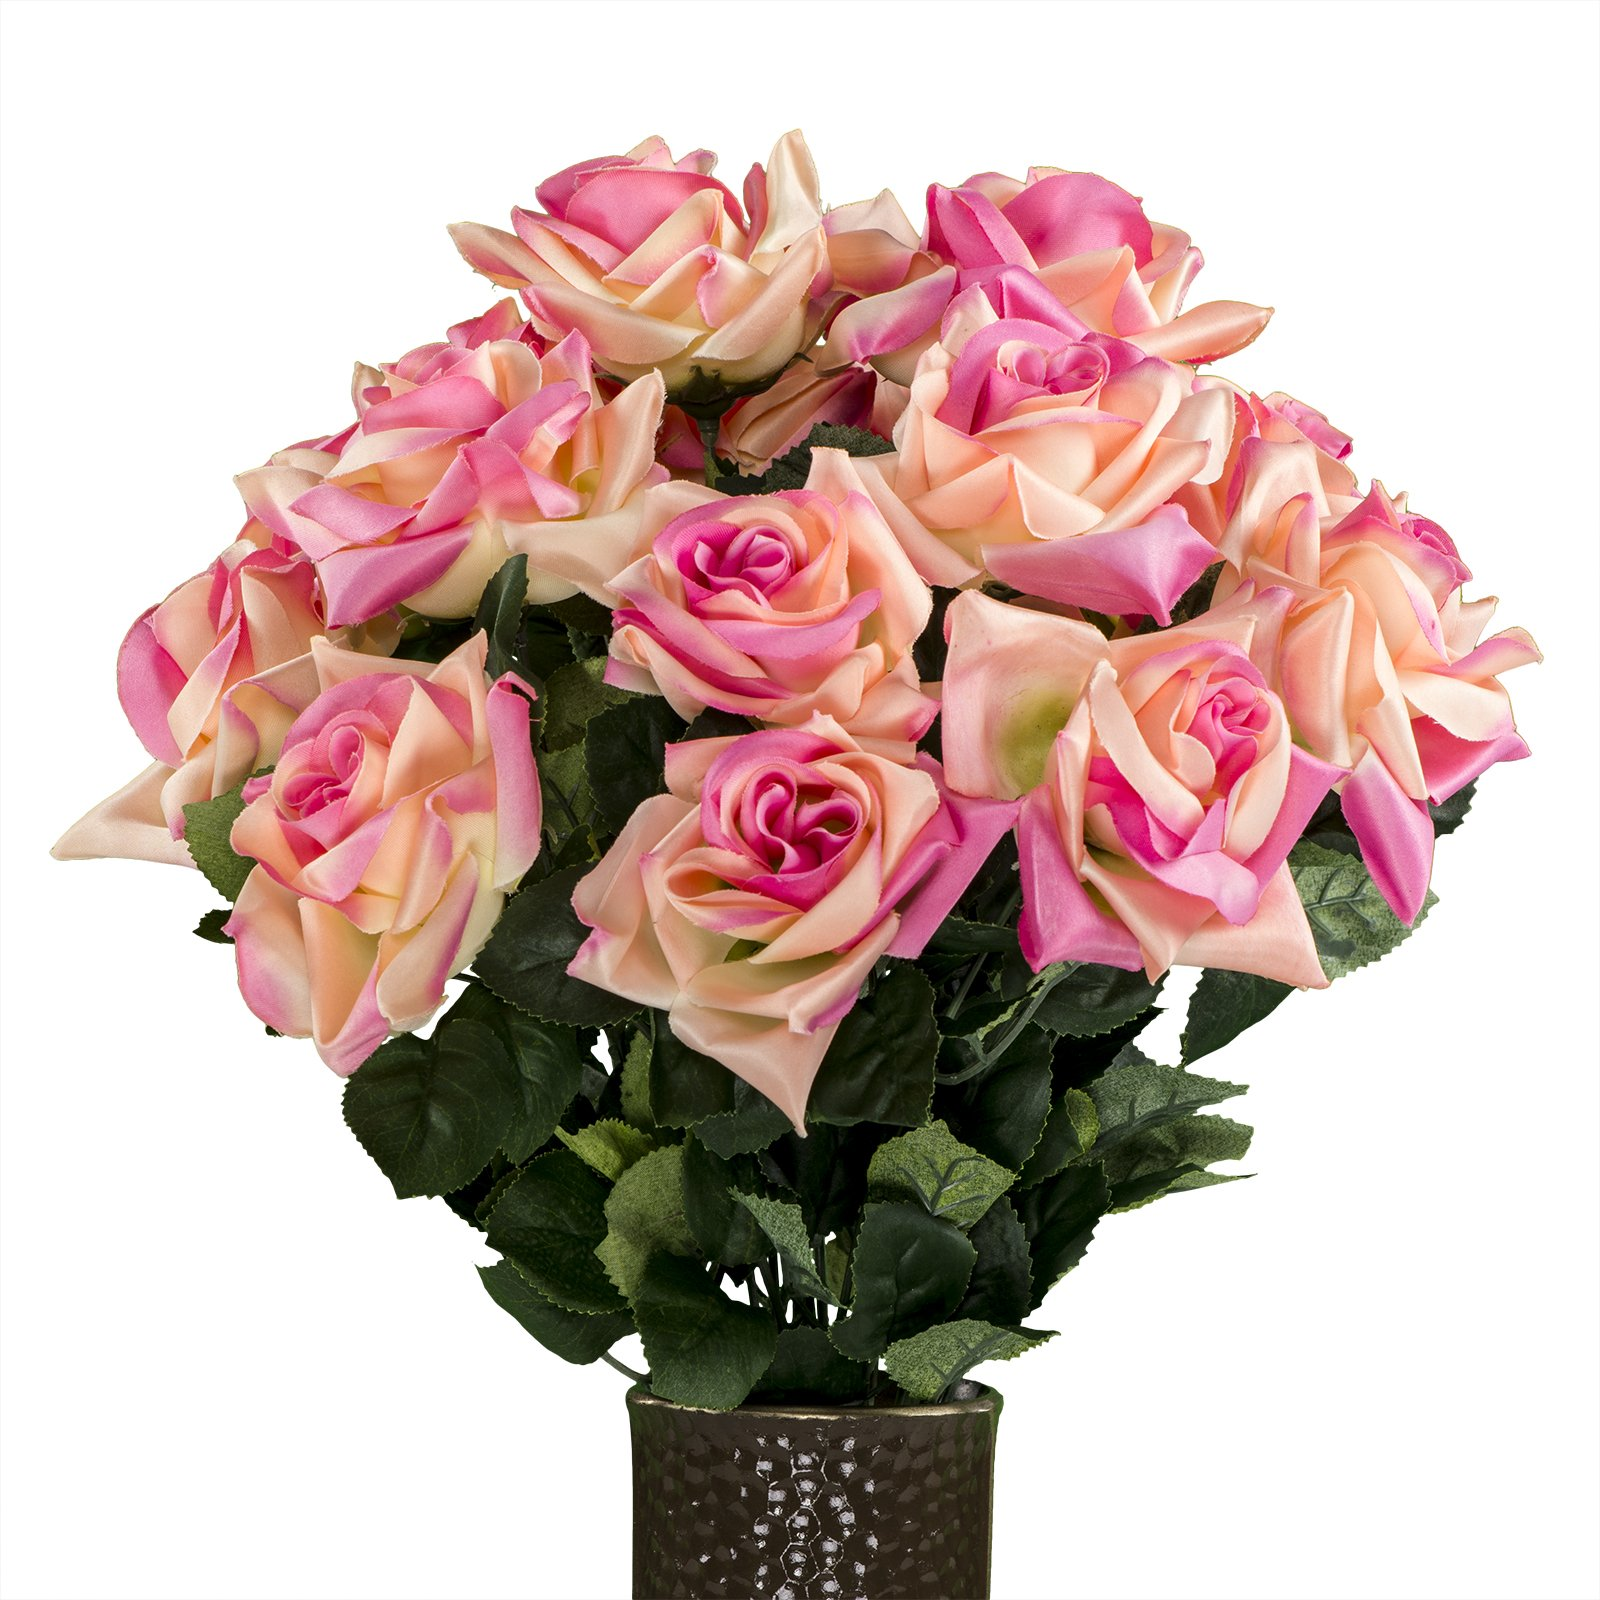 Beauty-Diamond-Rose-Artificial-Bouquet-featuring-the-Stay-In-The-Vase-Designc-Flower-Holder-MD1344